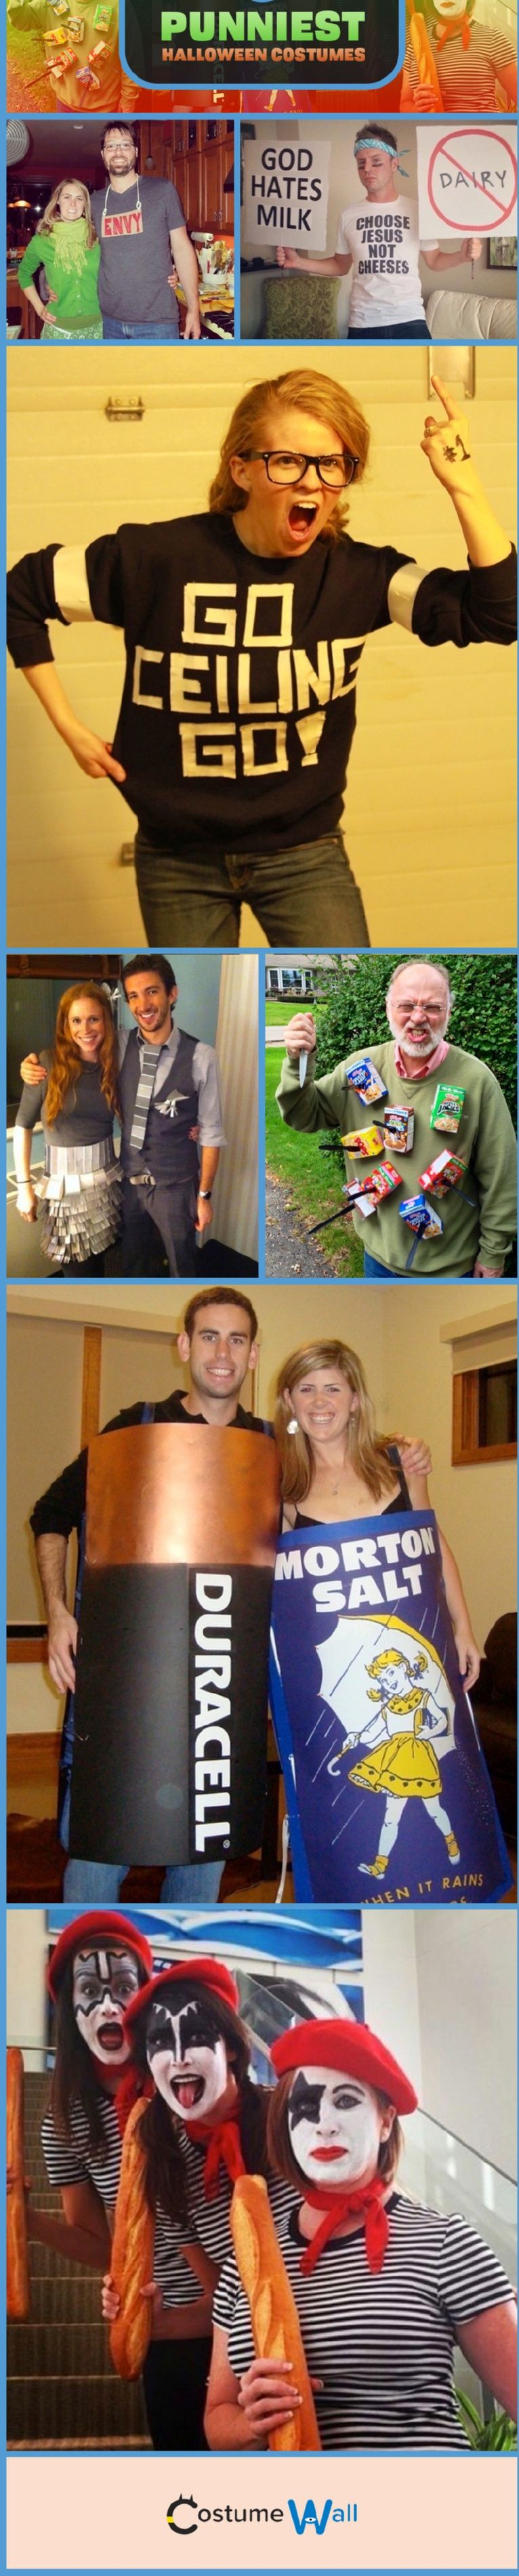 homemade halloween costumes. We've found some really punny